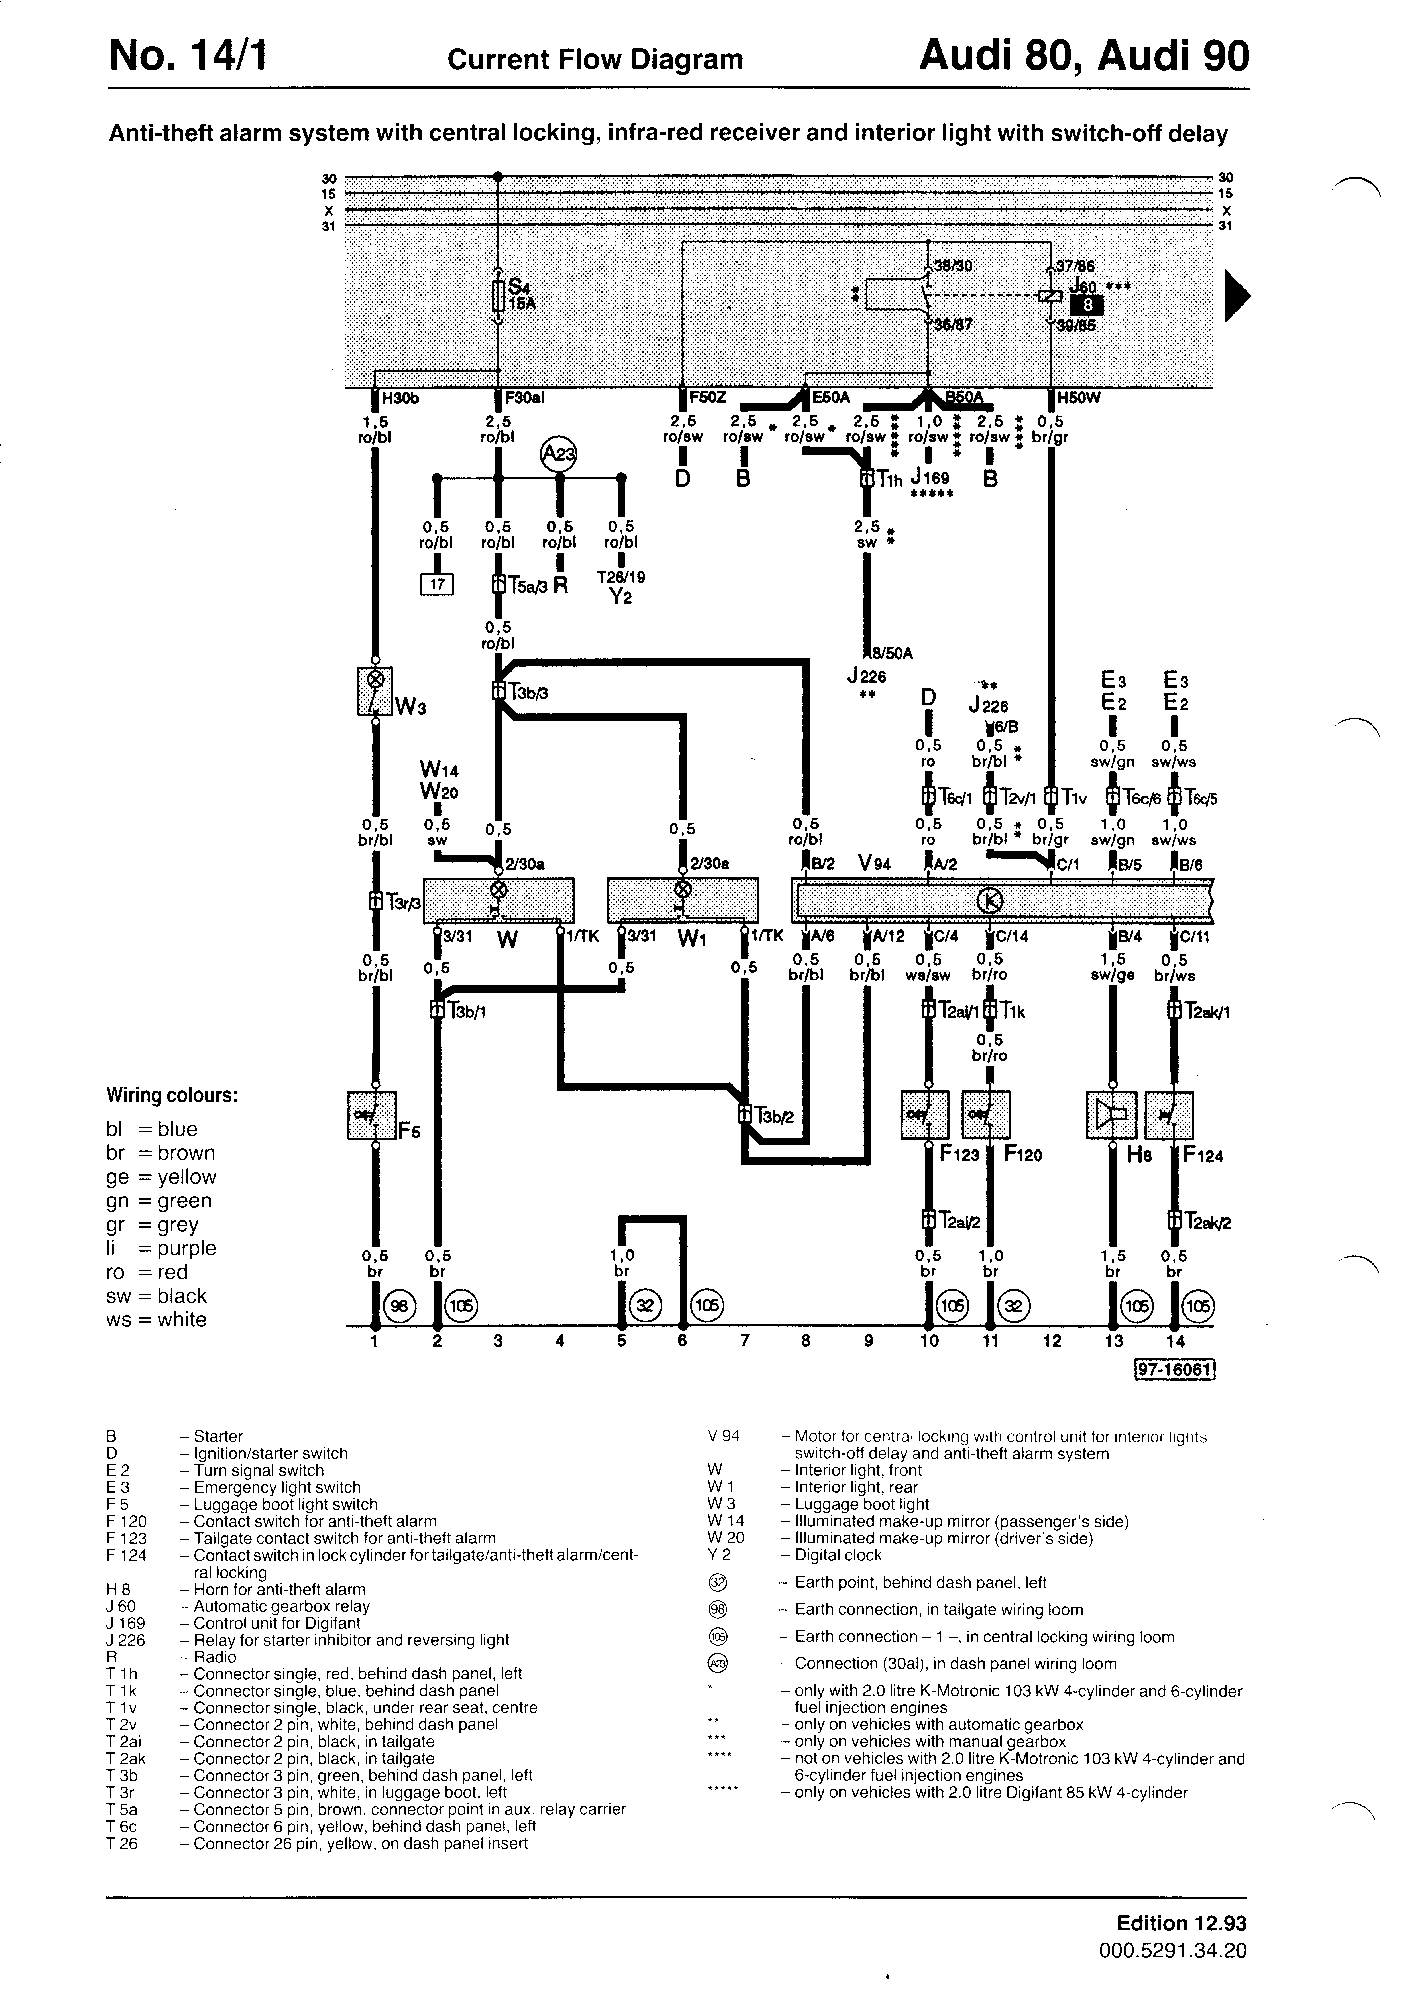 2009 Kia Spectra Junction Fuse Box Diagram in addition RepairGuideContent besides Ceiling Fan Wiring Diagram H ton Bay furthermore Sc lookup besides Ac Light Wiring 3 Way Switch. on to light and fan switch wiring diagram 1